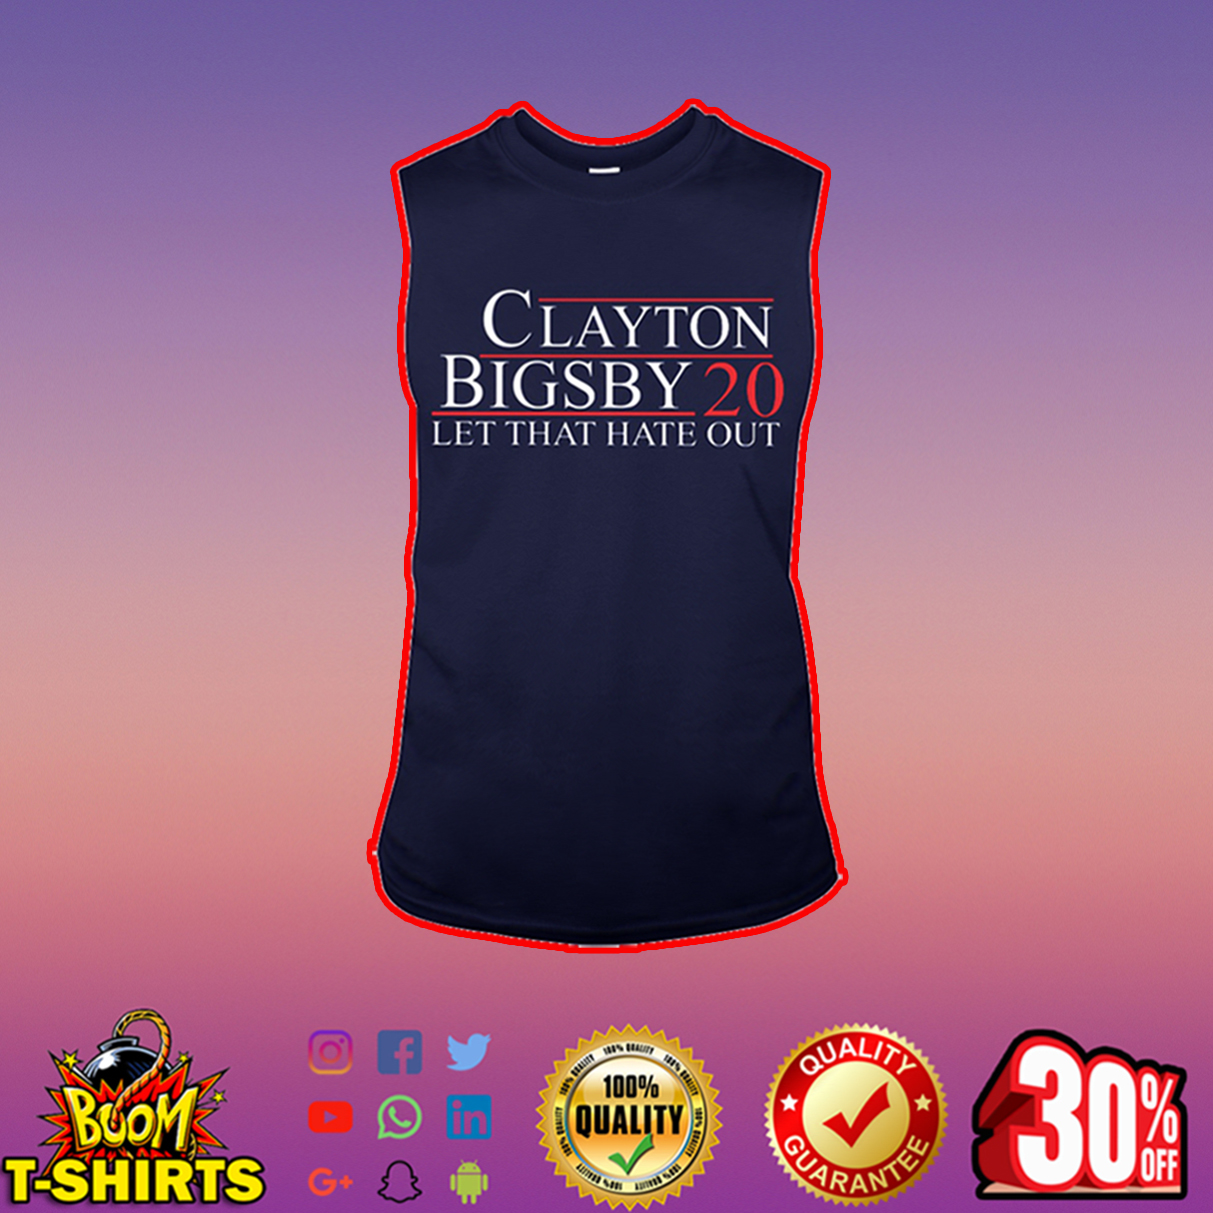 Clayton Bigsby 20 let that hate out sleeveless tee